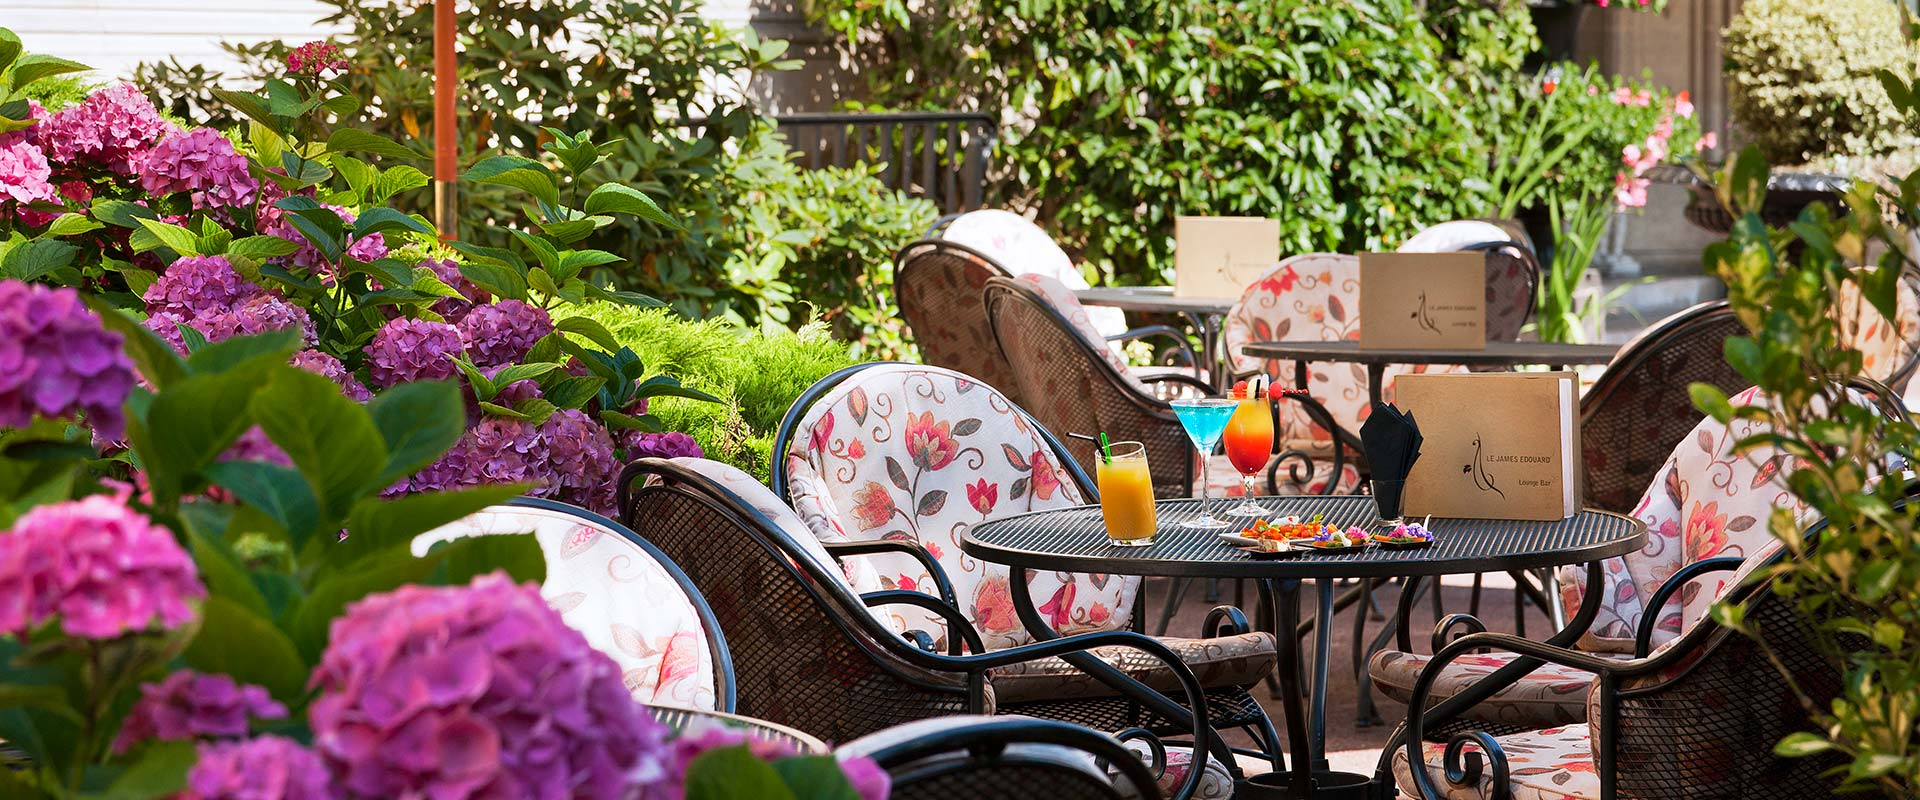 Bar James Edouard - Terrasse